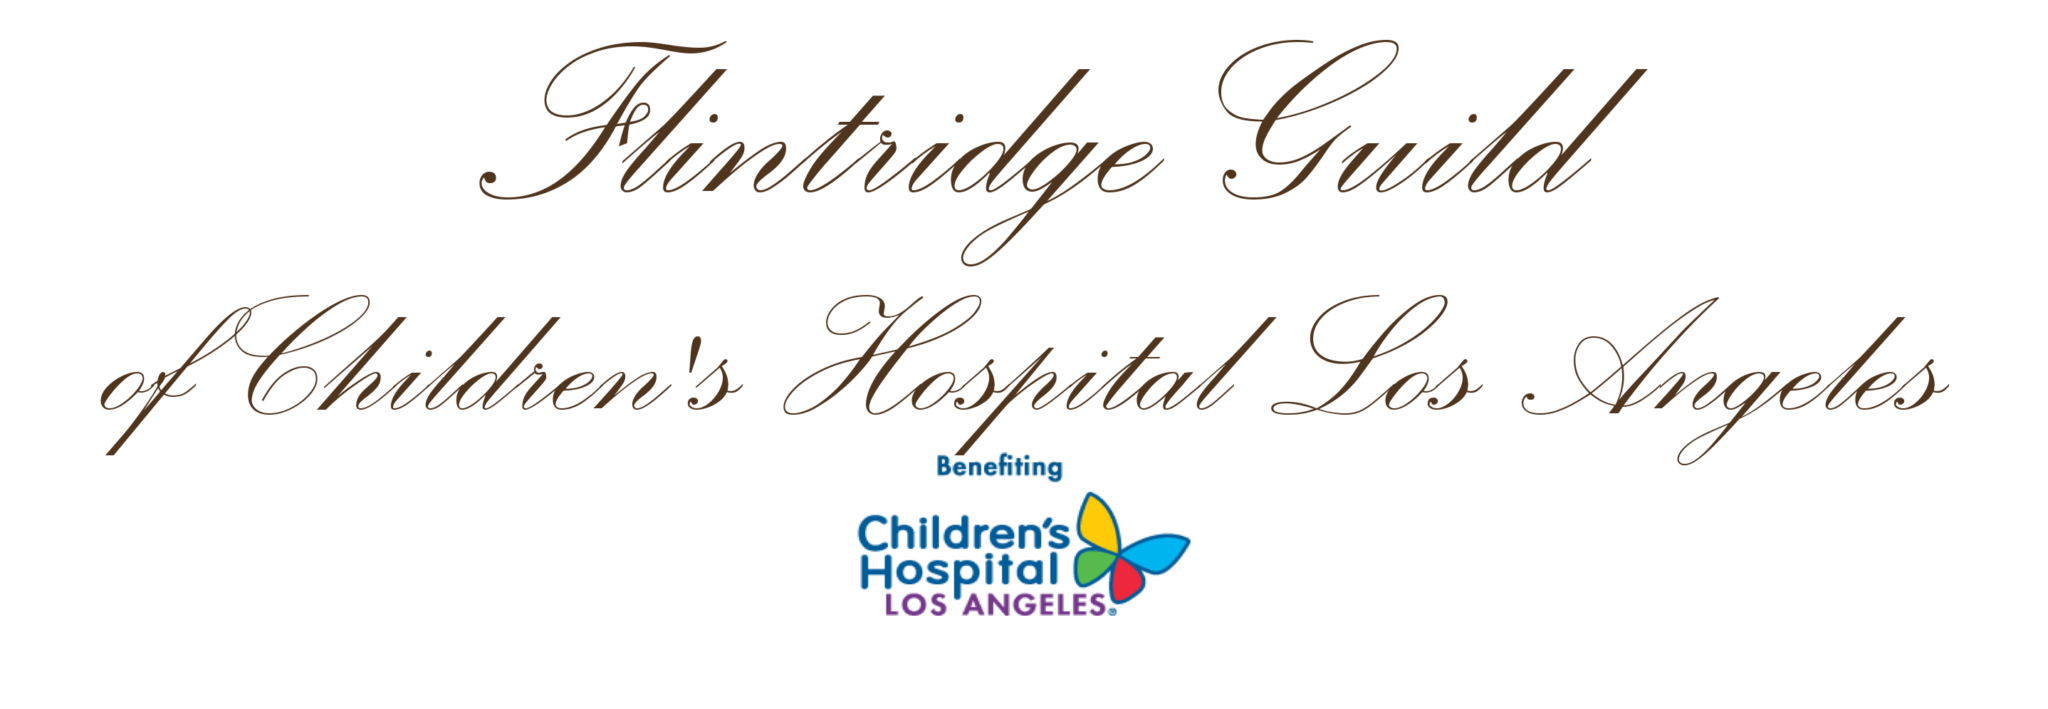 Flintridge Guild of Children's Hospital Los Angeles